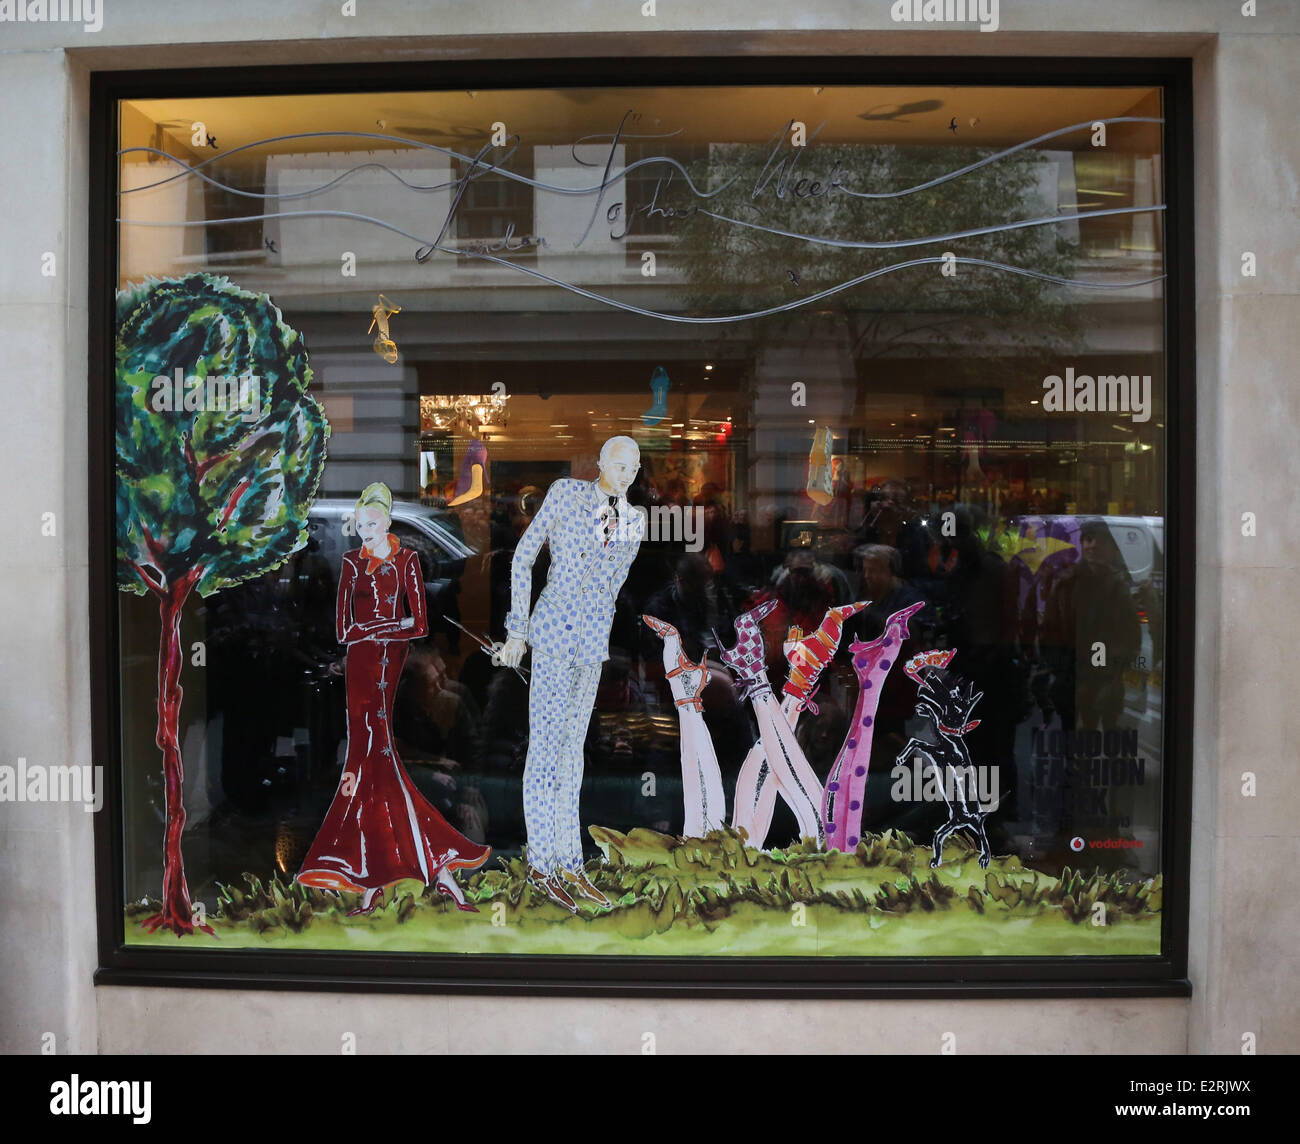 190120e3b88d8 The May Fair hotel unveils its fashion windows by Manolo Blahnik CBE as  part of London Fashion Week Featuring: Manolo Blahnik Where: London,  England When: ...